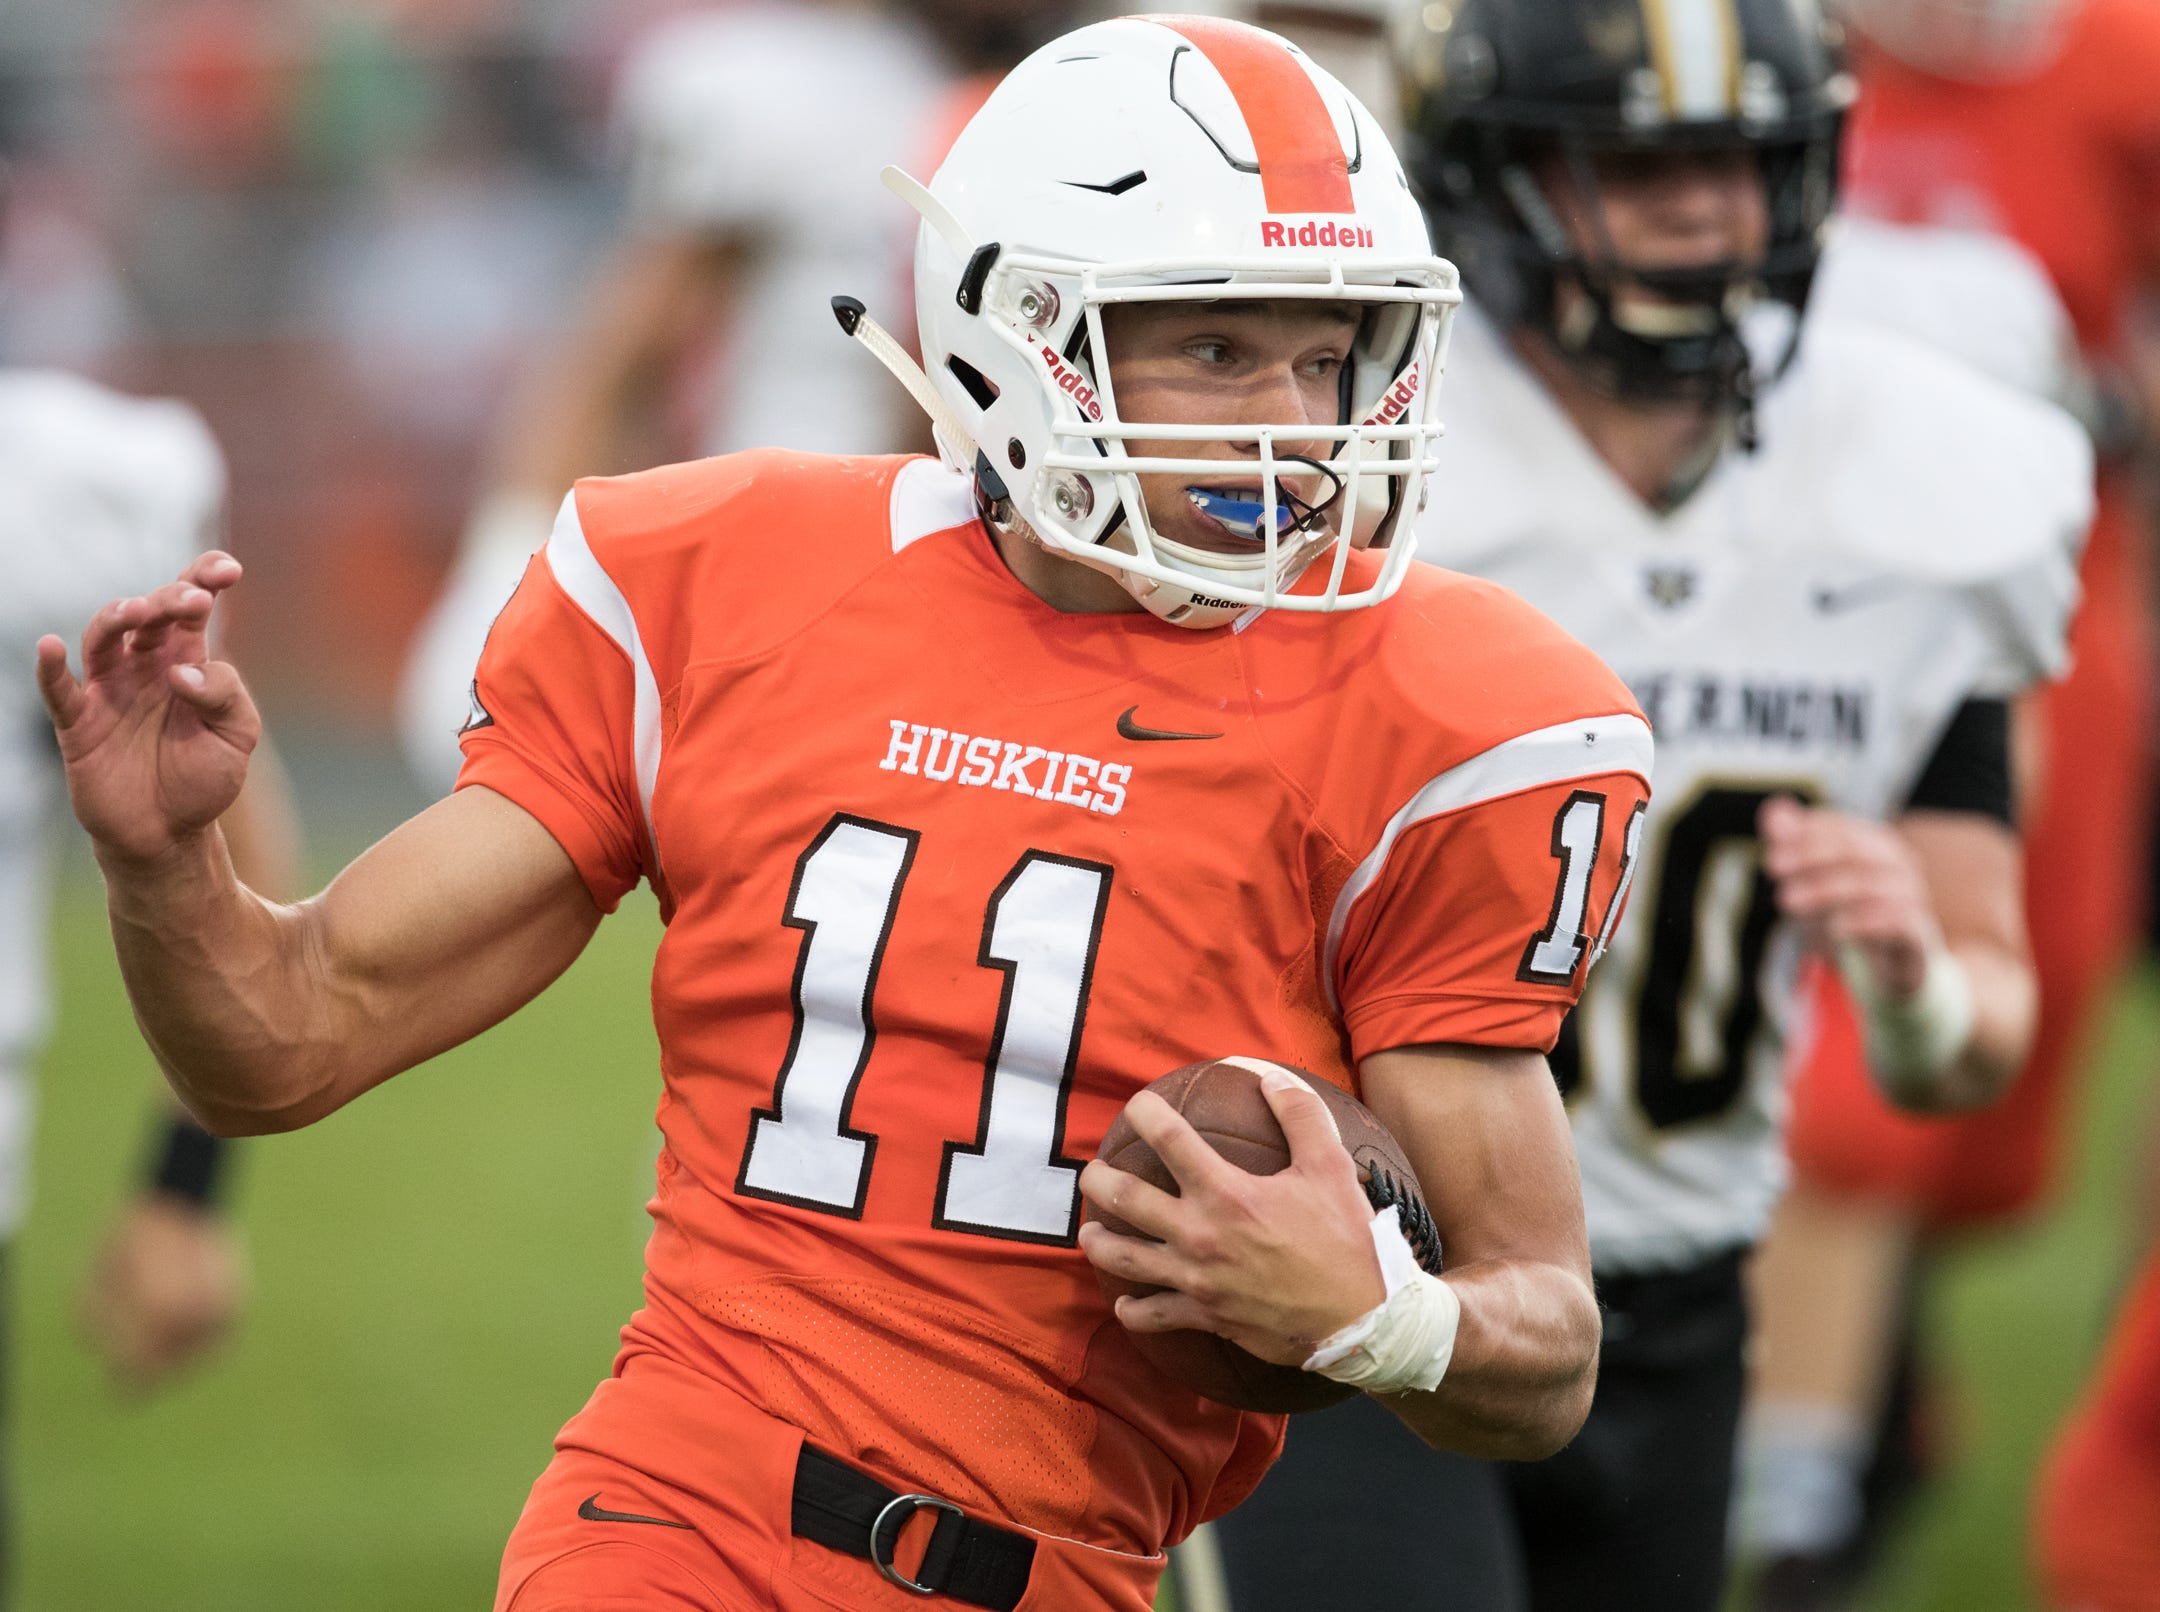 Blake Webel of Hamilton Heights High School, heads upfield on a run against Mount Vernon High School at Hamilton Heights High School football, won by MVHS, 43-14, Arcadia, Friday, Aug. 17, 2018. This game is the first for HHHS head coach Jon Kirschner, who faced his father Mike Kirschner, a veteran and champion coach in his first season at MVHS.